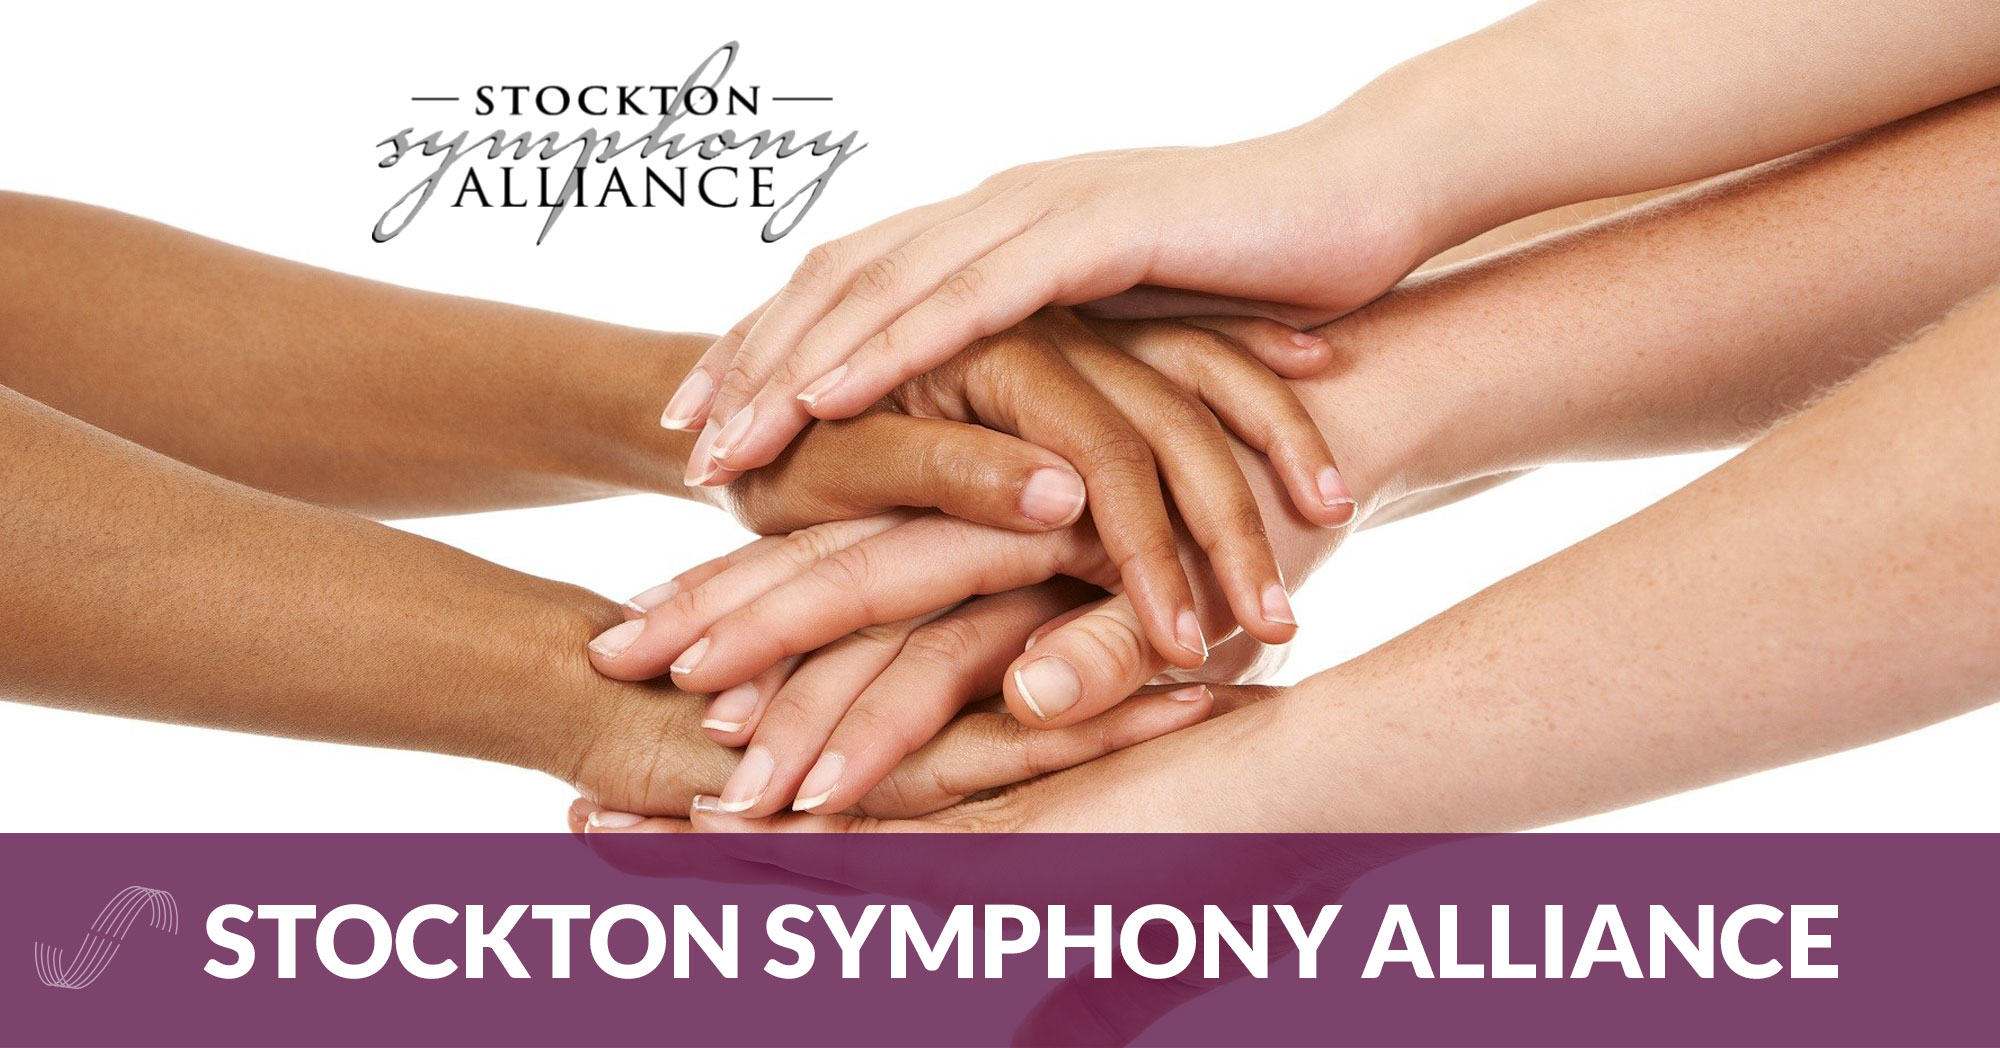 Stockton Symphony Alliance